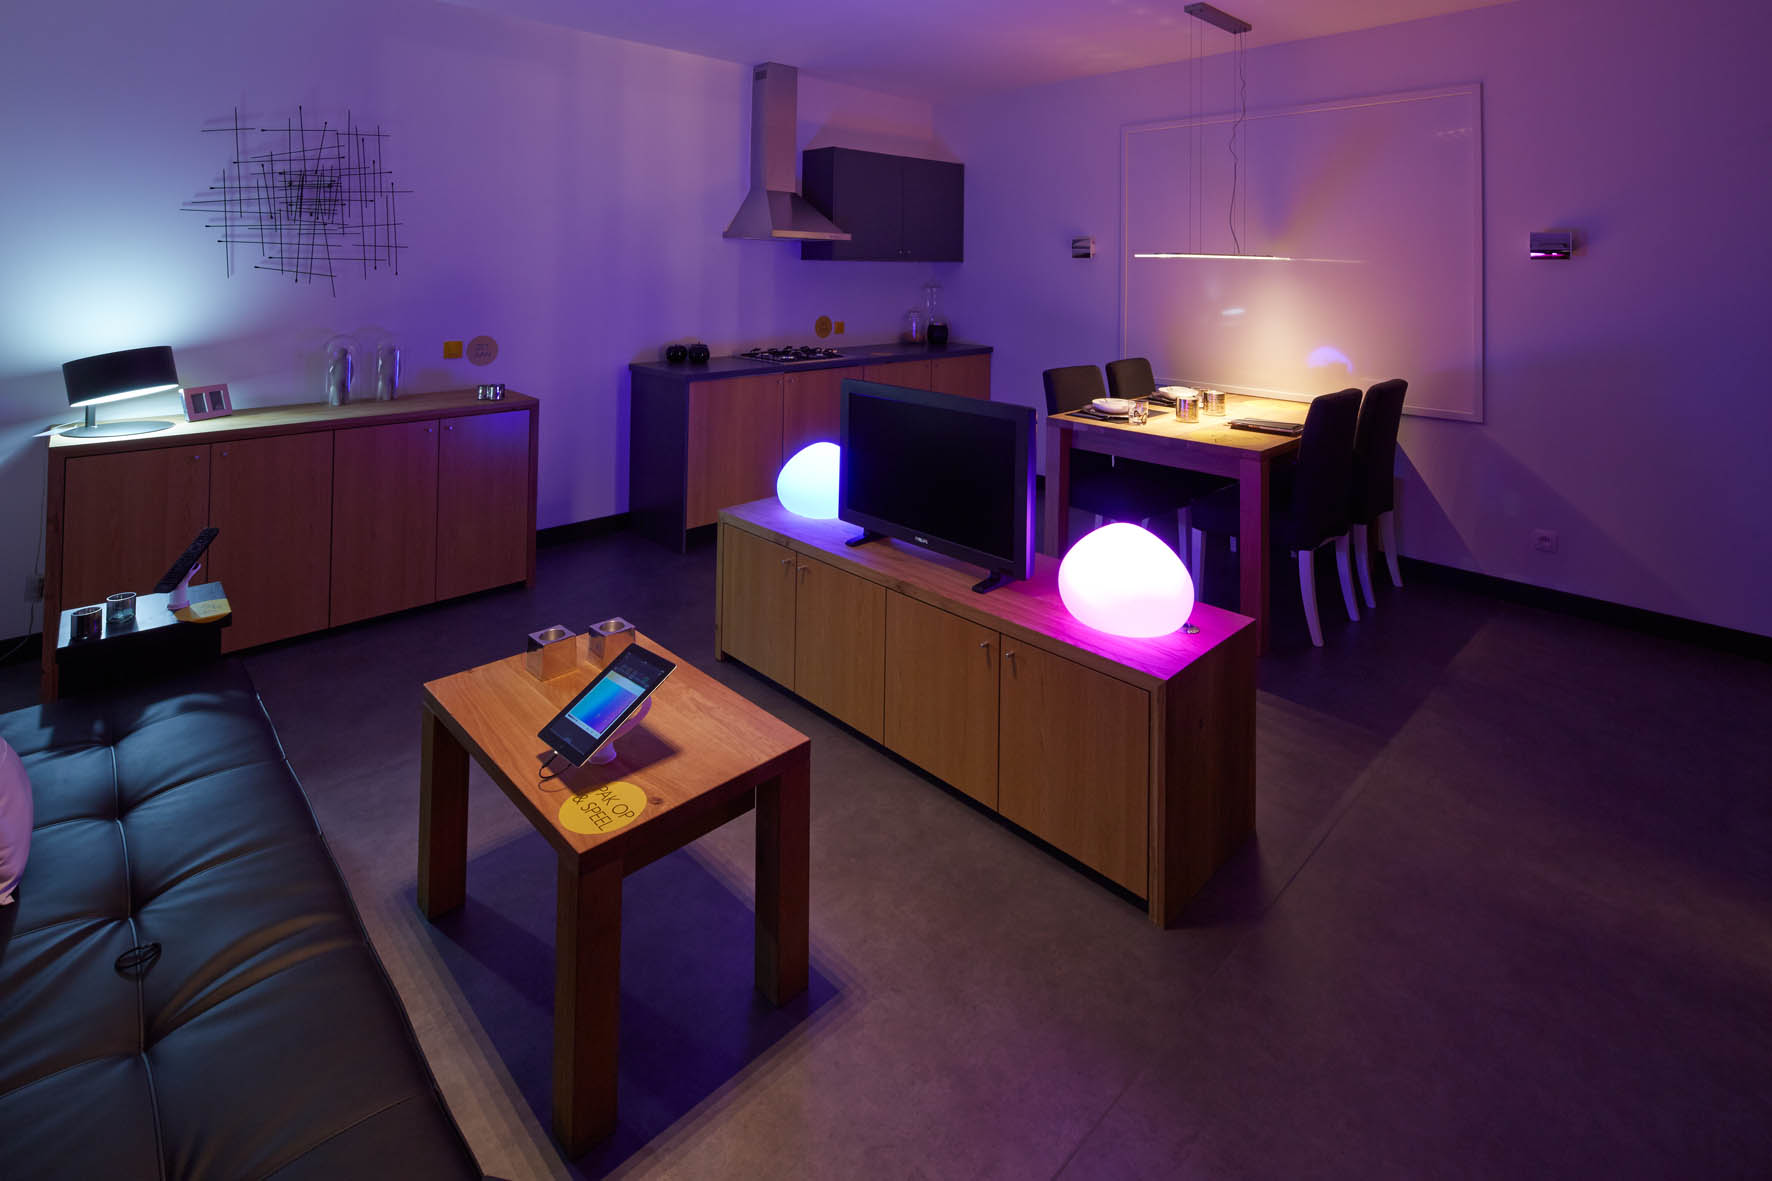 Light Gallery interactiva para Philips